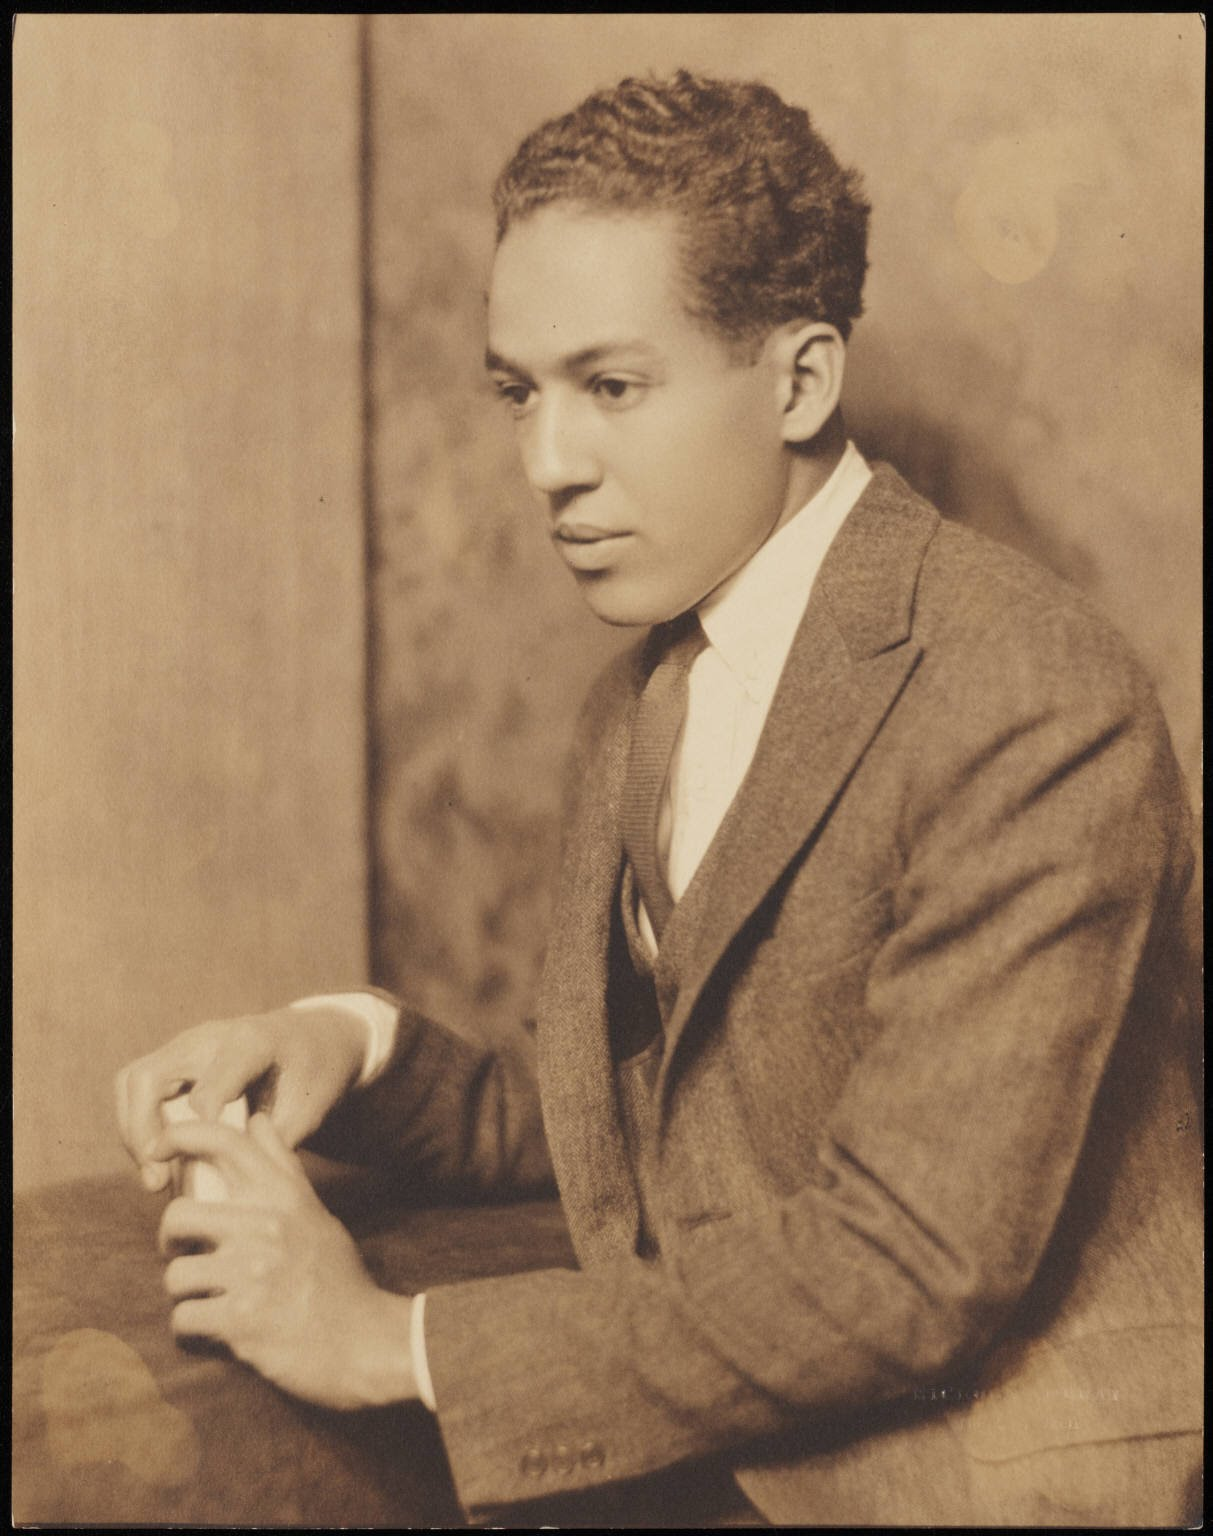 a biography of langston hughes Langston hughes - poet - a poet, novelist, fiction writer, and playwright, langston hughes is known for his insightful, colorful portrayals of black life in america.